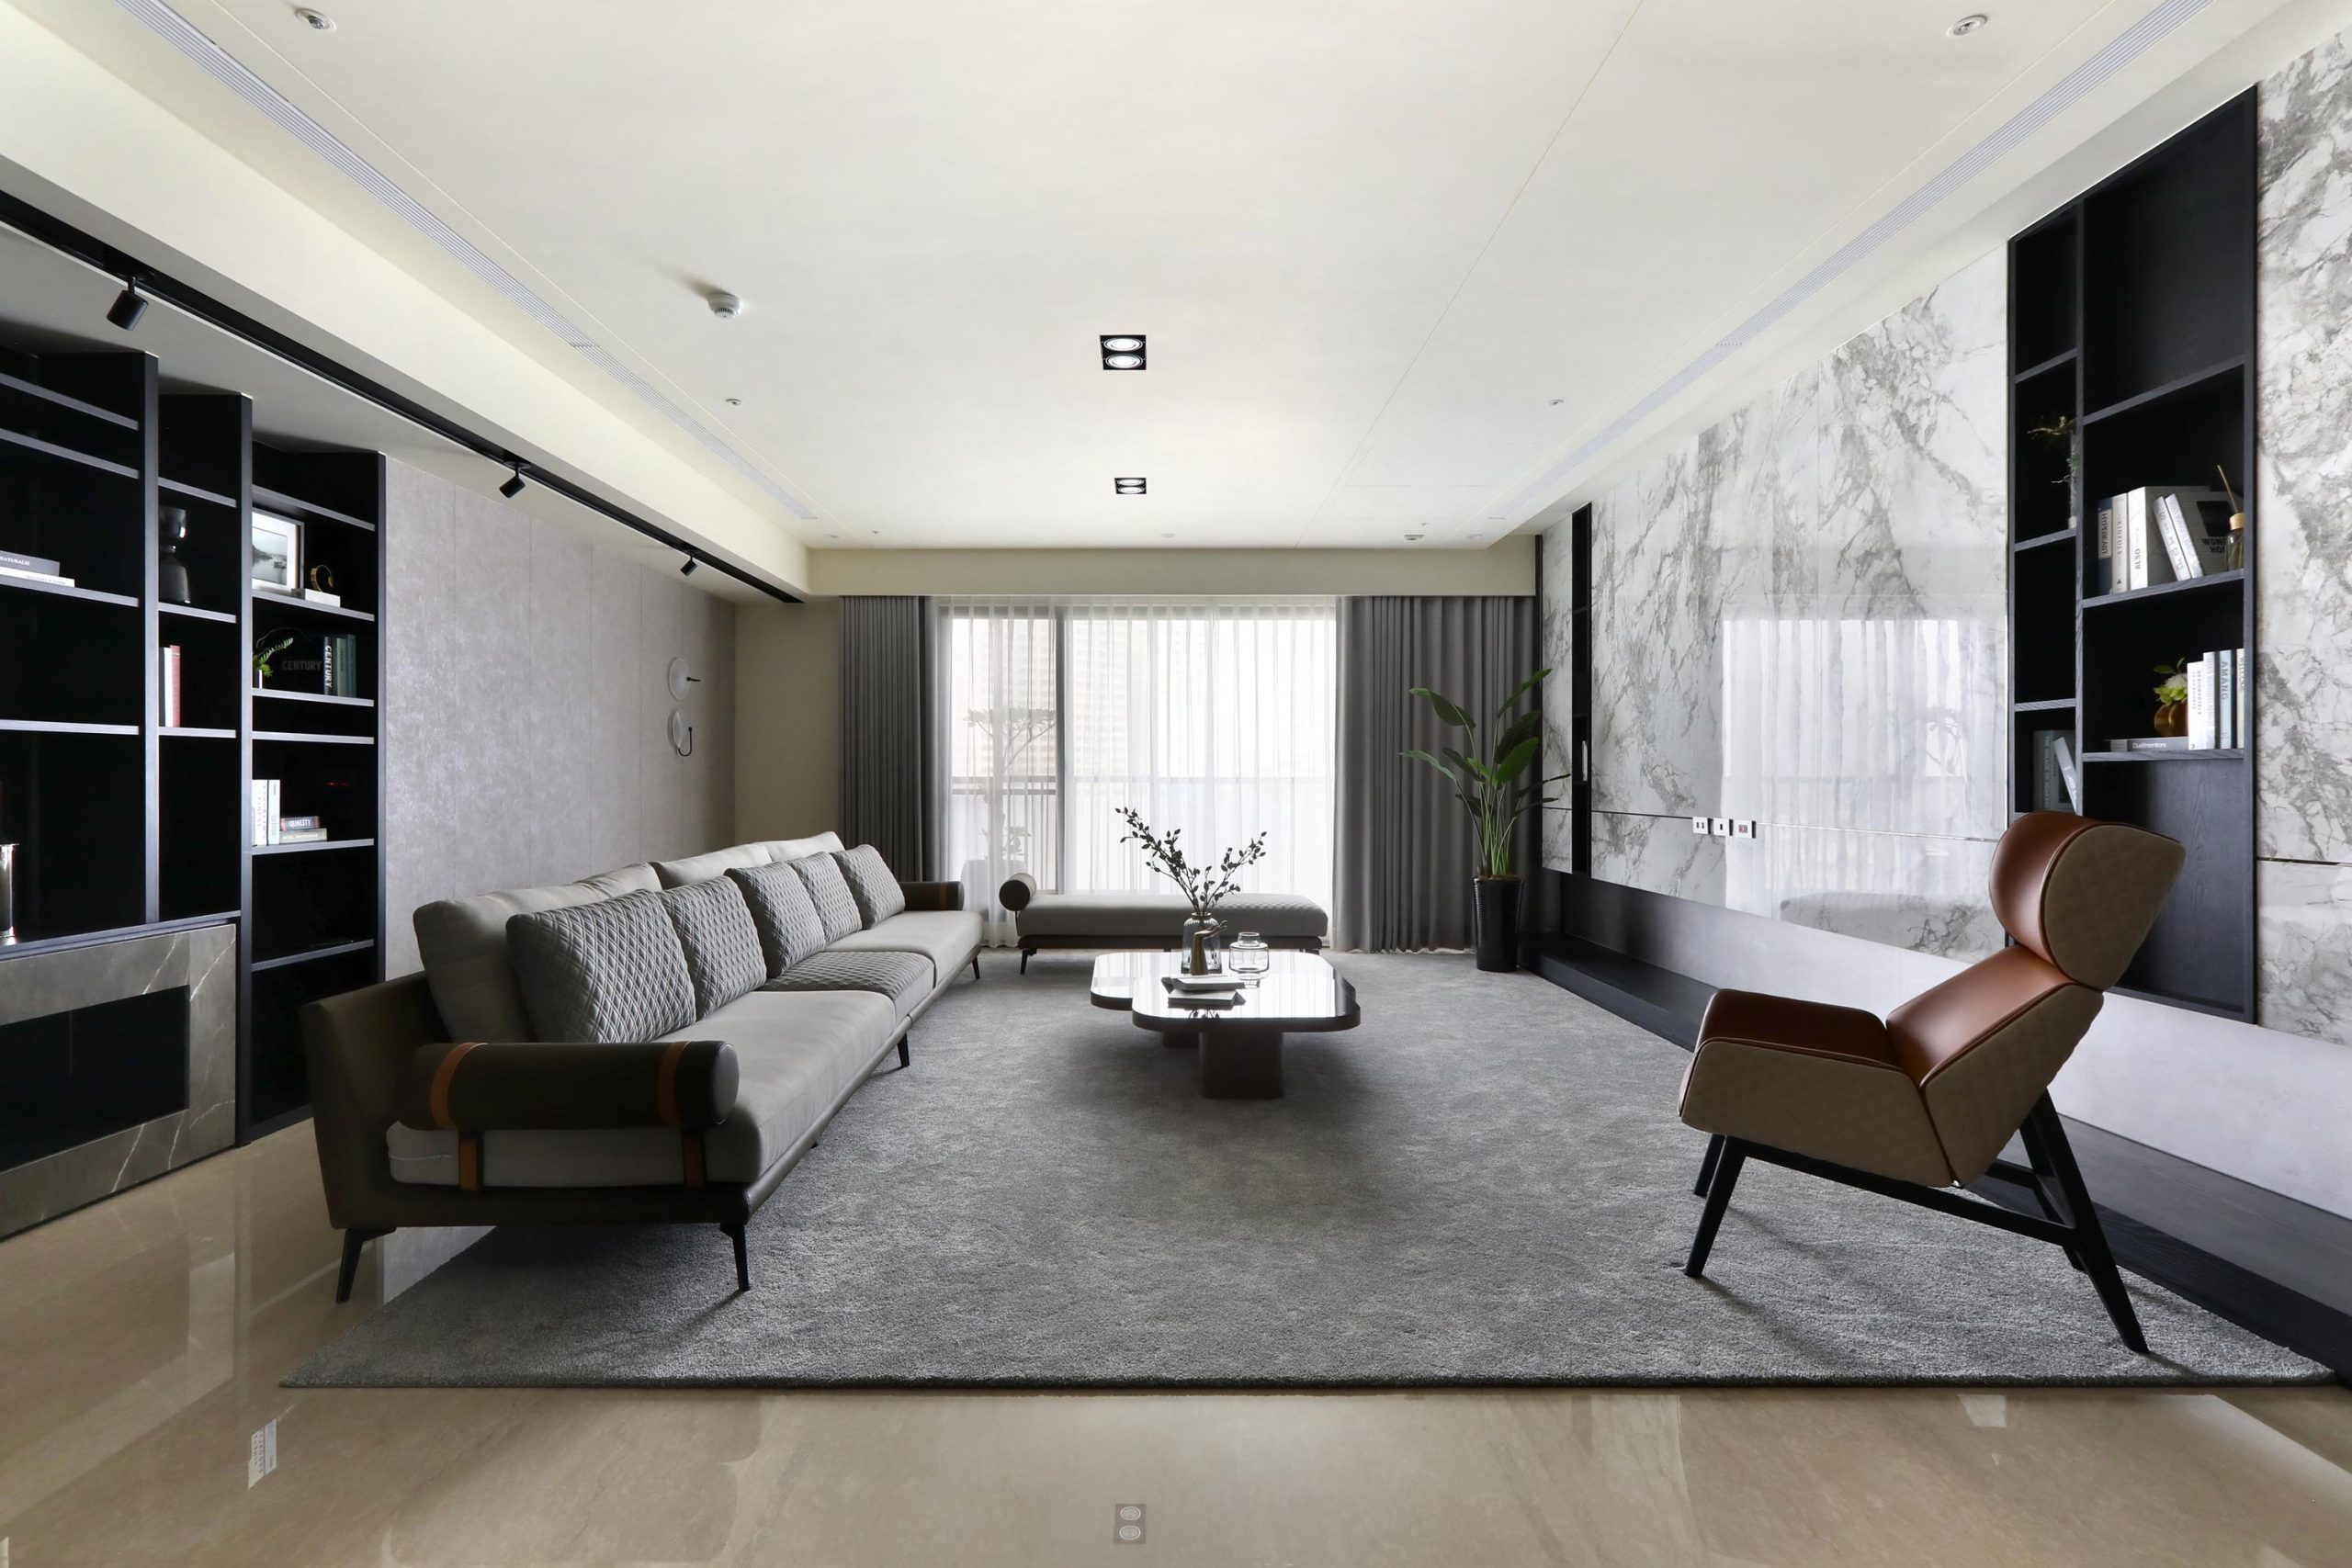 Interview with Chao-Yen Chen, Shining Interior Decoration Design Co., Ltd, Taiwan